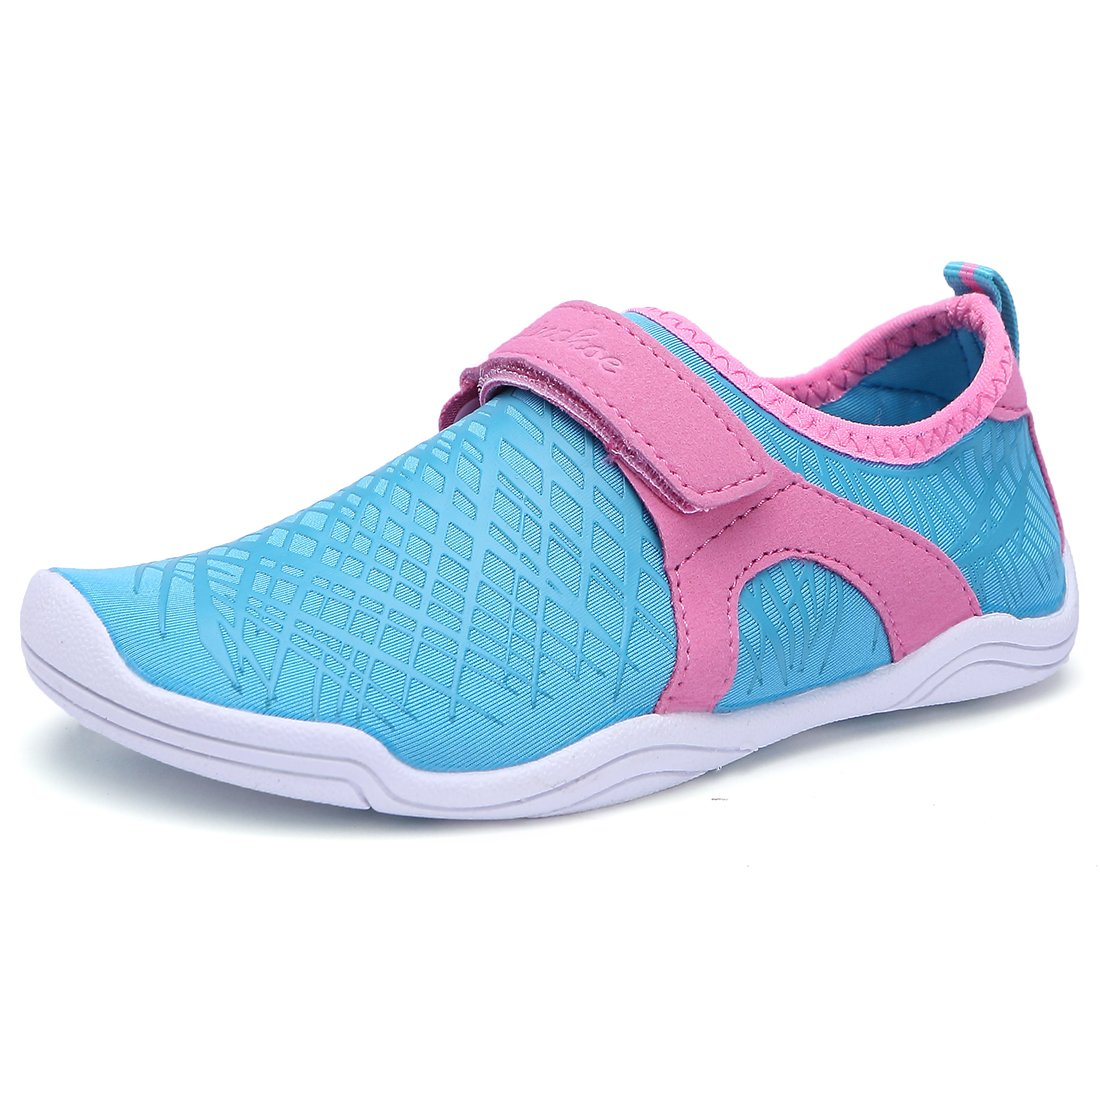 BTDREAM Boy and Girls Athletic Water Shoes Quick-Dry Slip on Aqua Sock for Beach Pool Swim Surf Walking